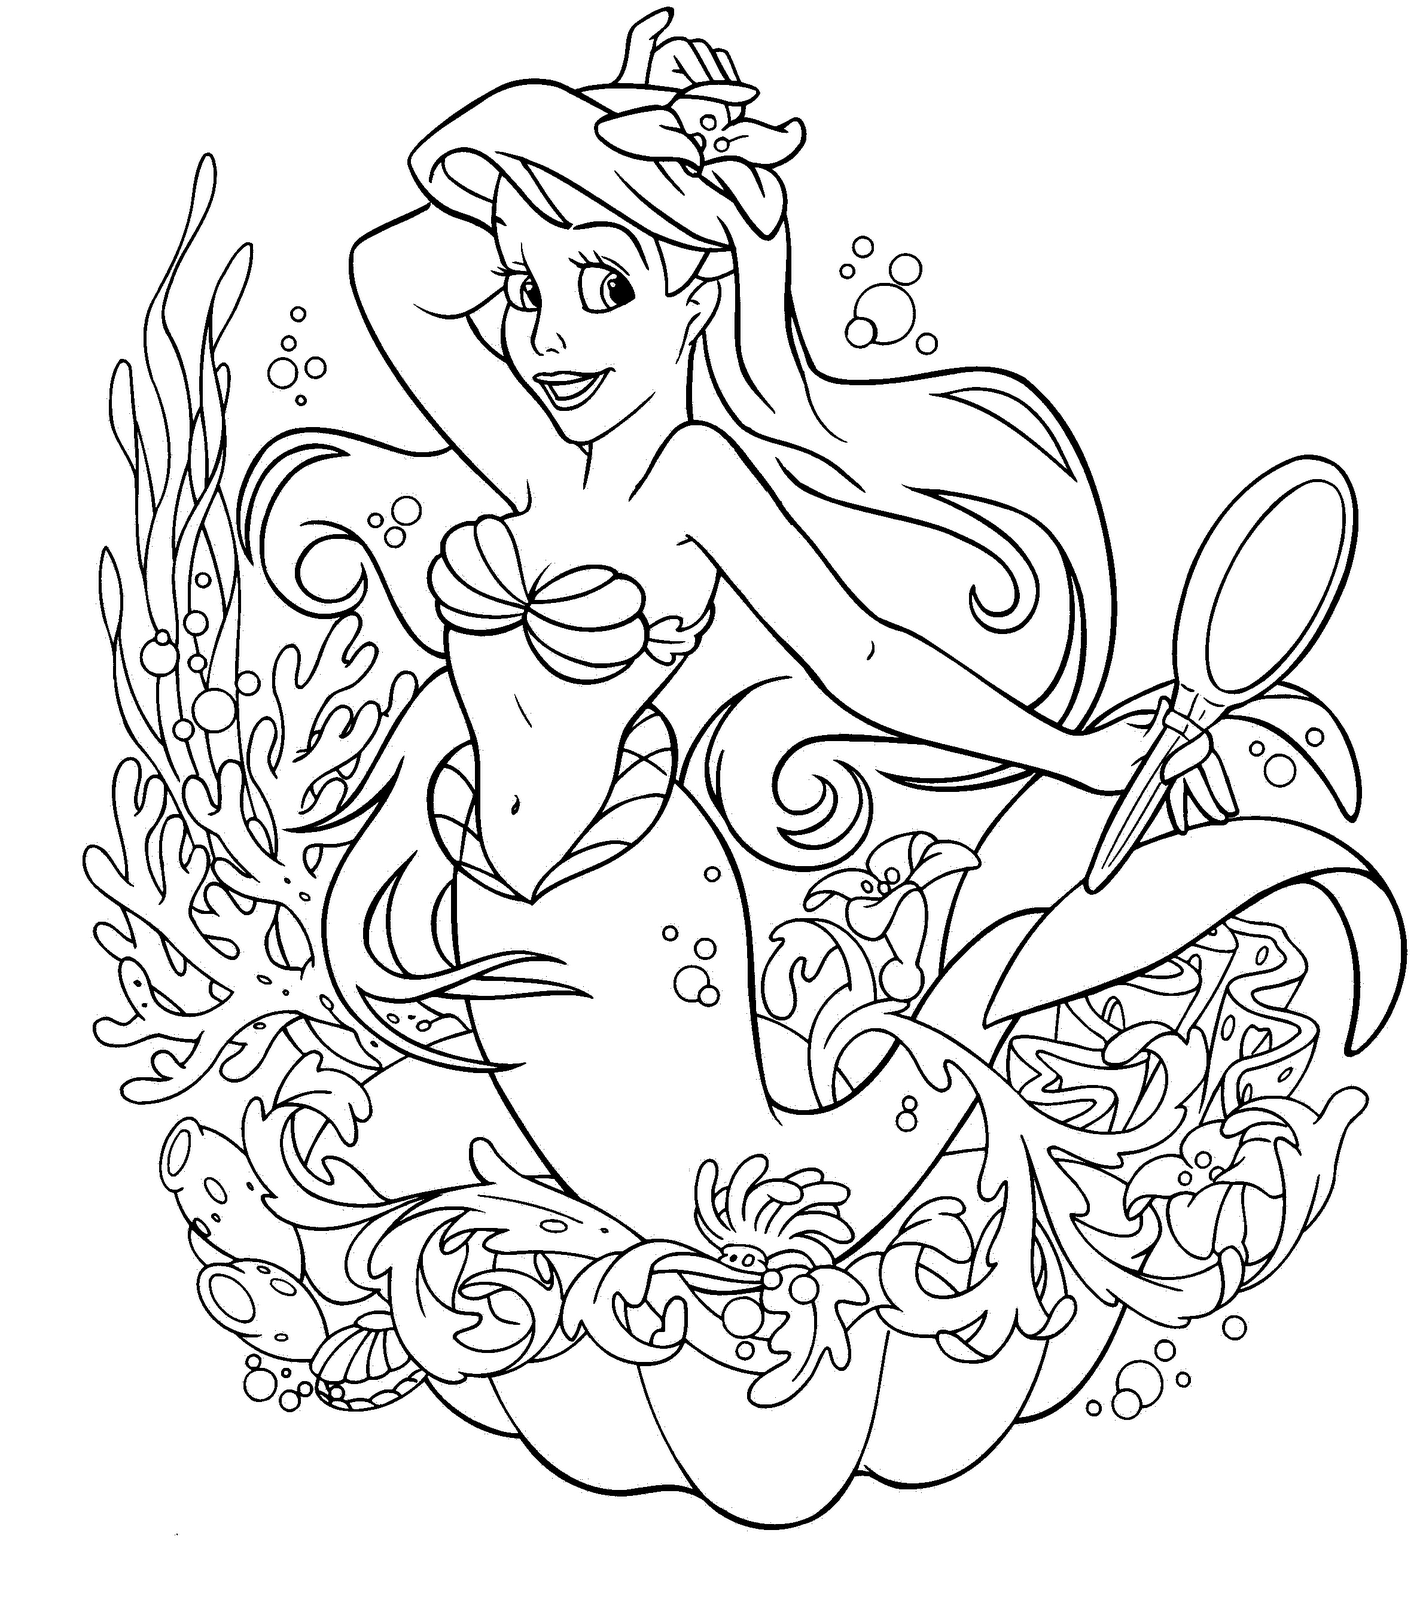 printable coloring pages disney - Disney fairies coloring pages Free Coloring Pages